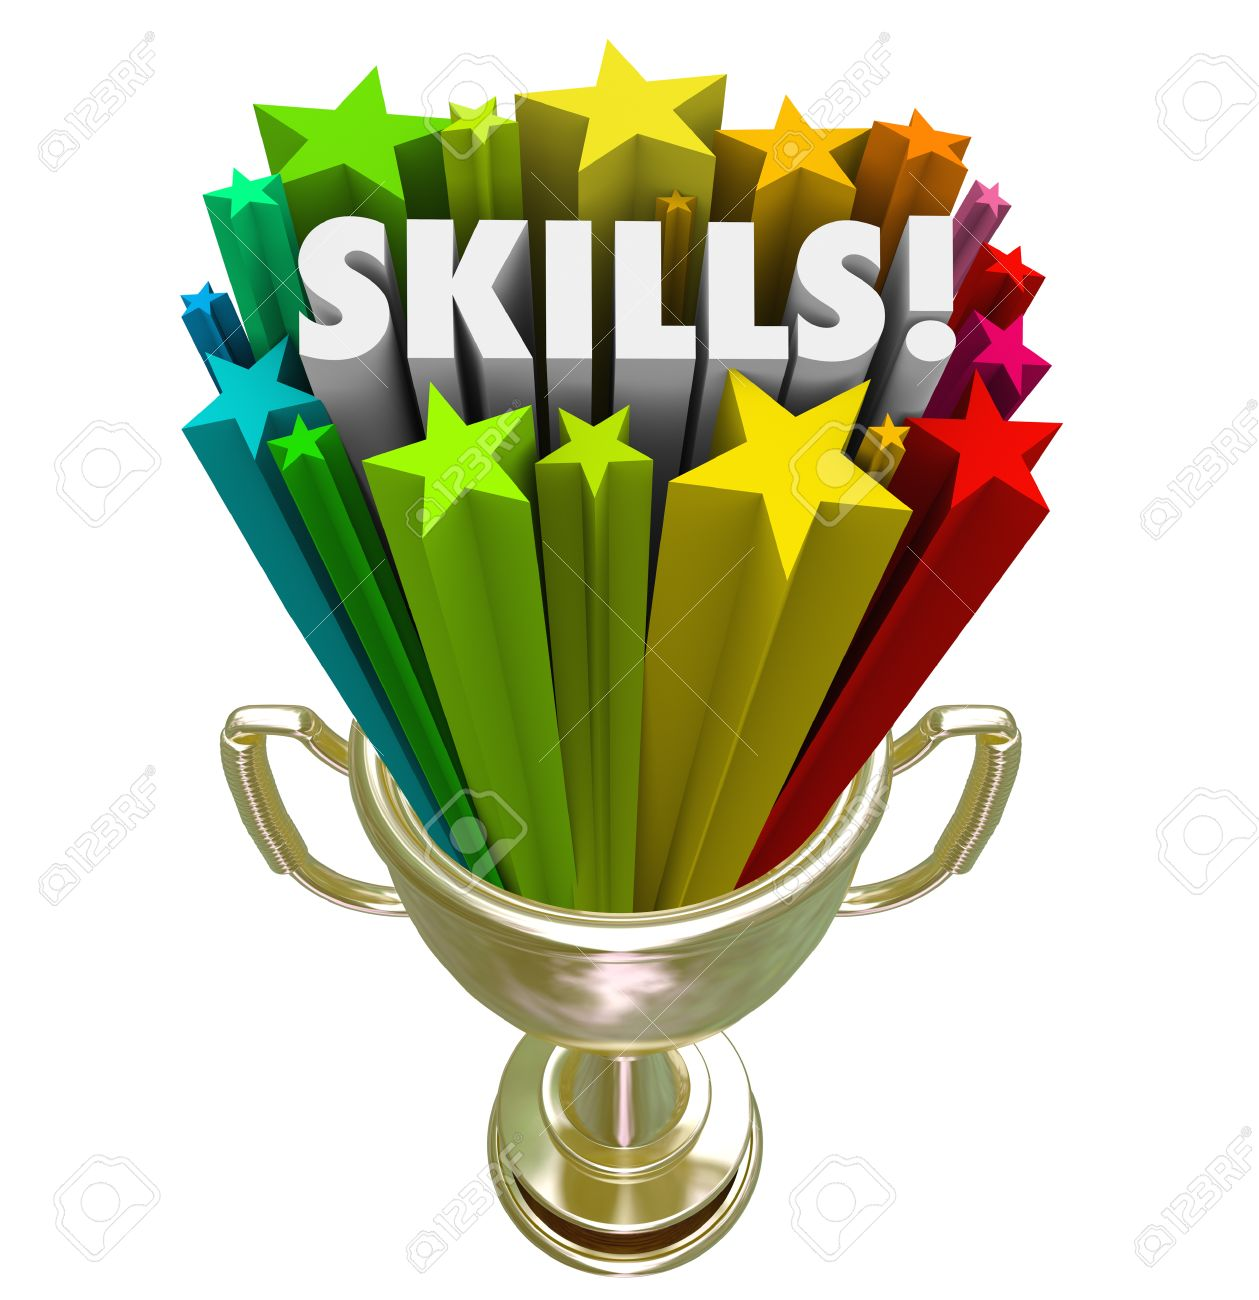 skills word in gold trophy illustrating you have the best skillset skills word in gold trophy illustrating you have the best skillset experience or knowledge needed